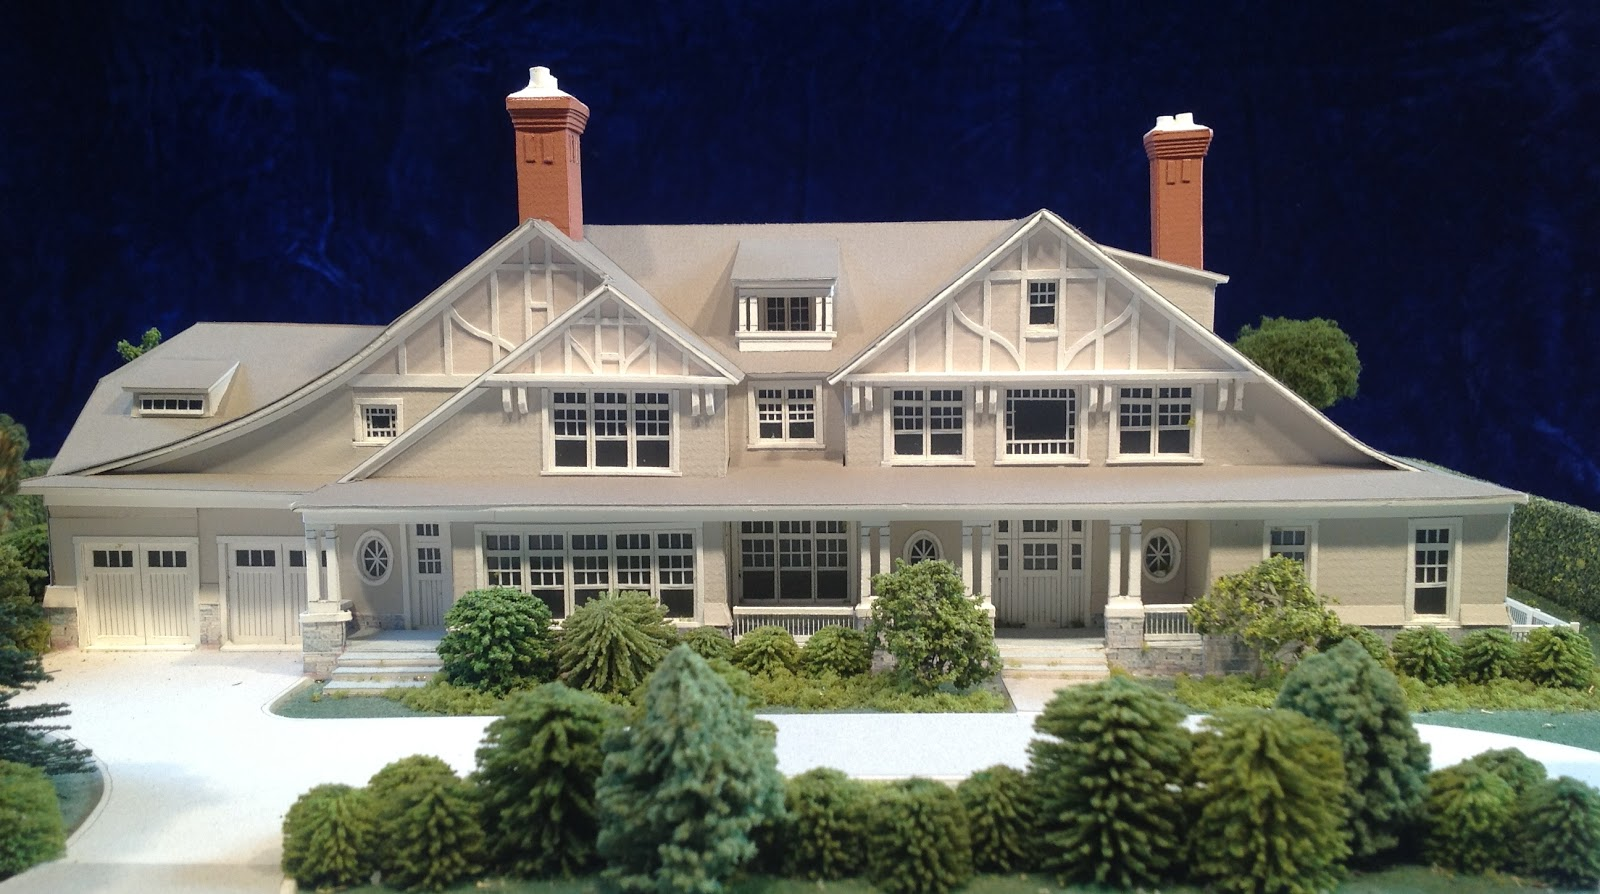 Architectural house models of houses in the hamptons long for House models pictures